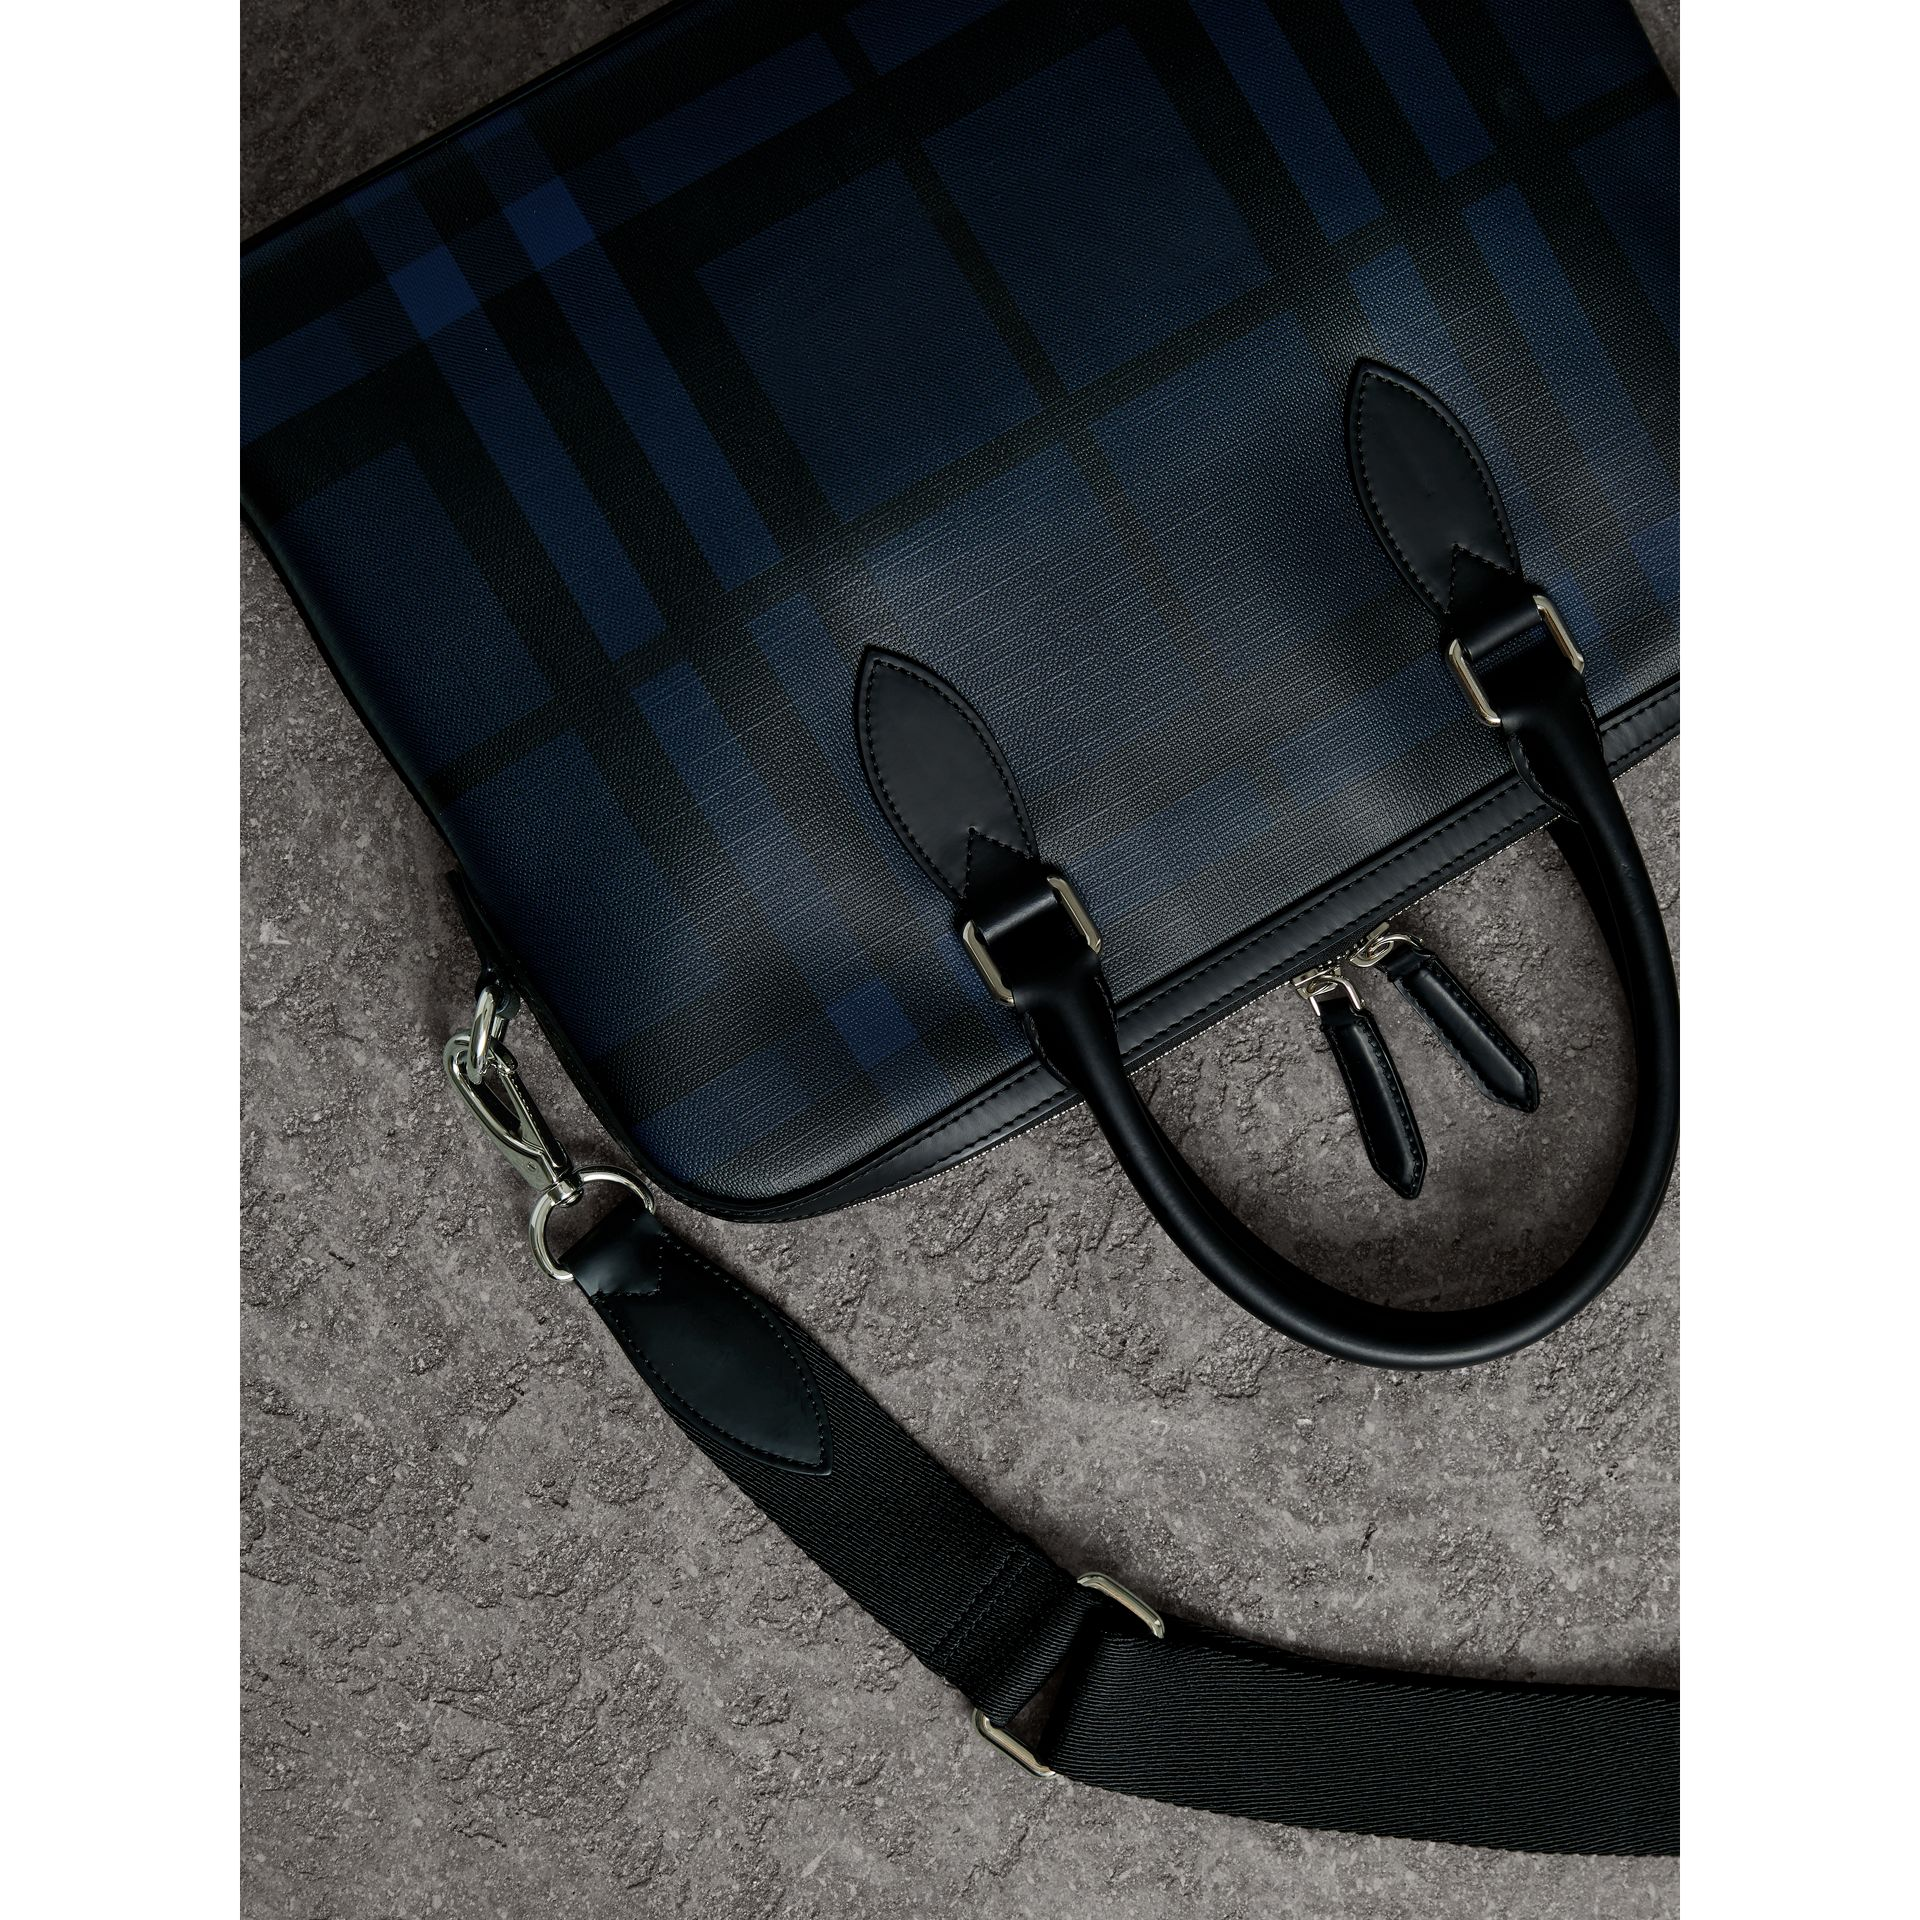 Medium Leather Trim London Check Briefcase in Navy/black - Men | Burberry Singapore - gallery image 5